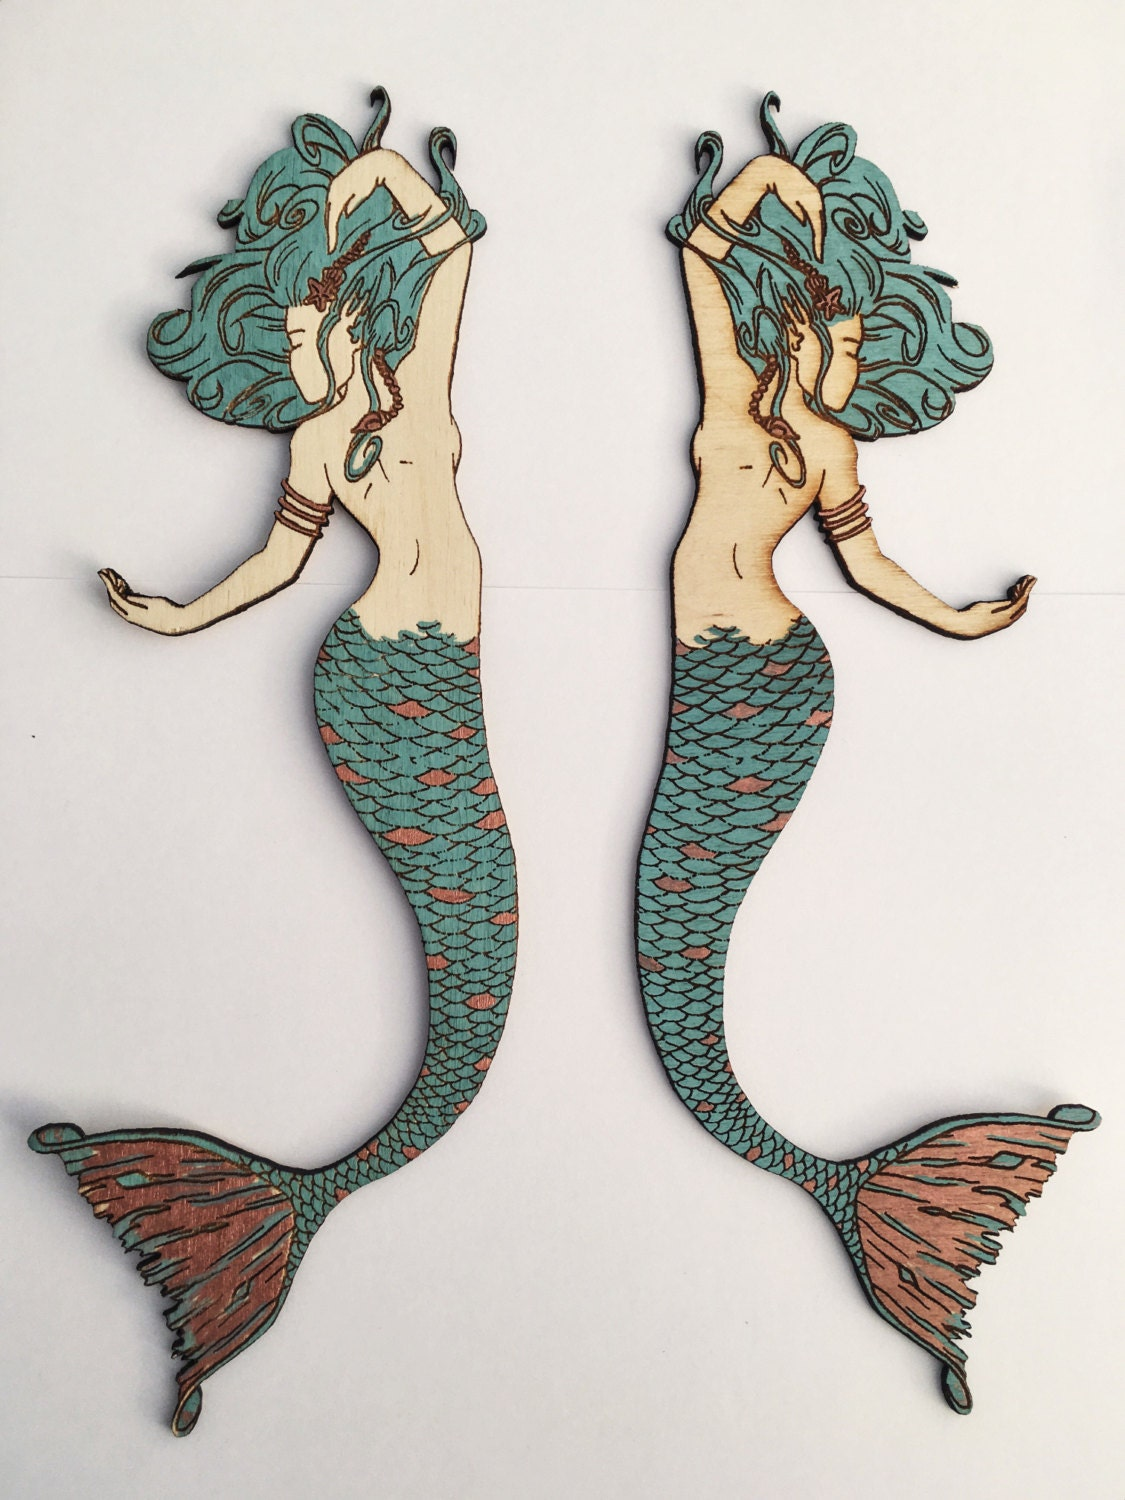 mermaid wall decor with copper leaf accents decorative mermaid